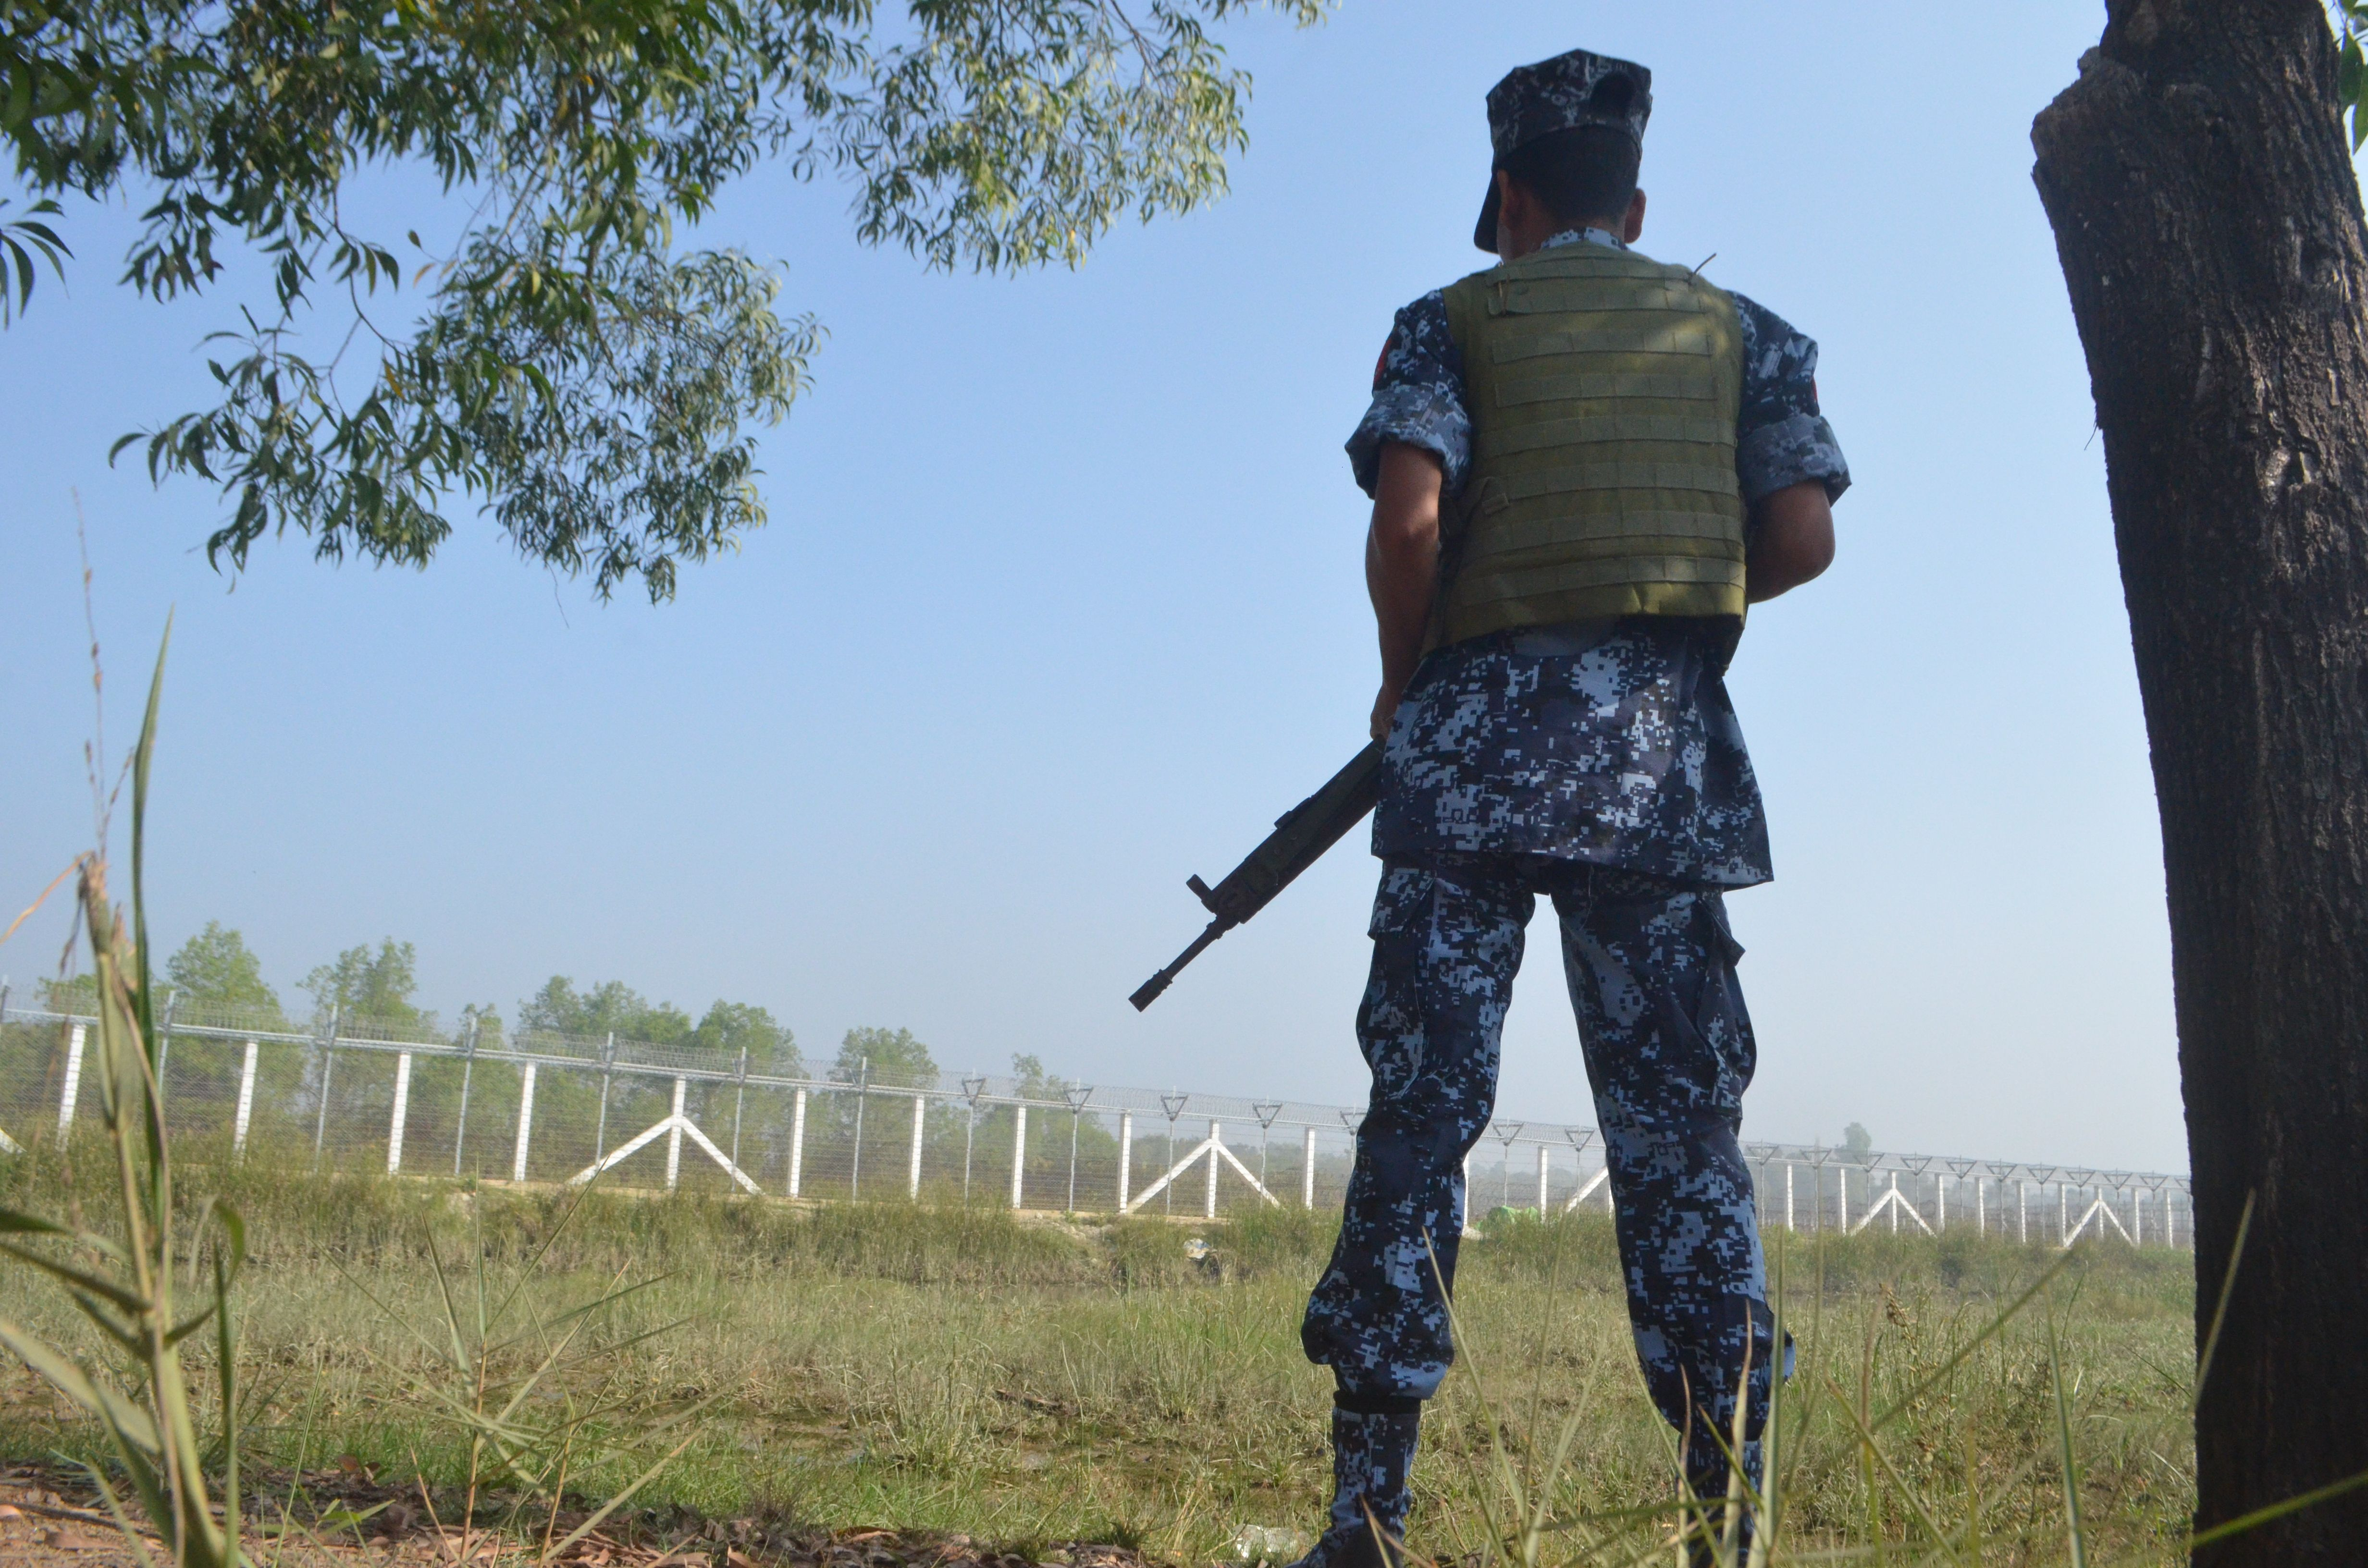 A Myanmar border policeman holds his weapon as he stands near the Taungpyo Bangladesh-Myanmar border gate on the outskirts of Maungdaw in Rakhine state on Jan. 24, 2018.